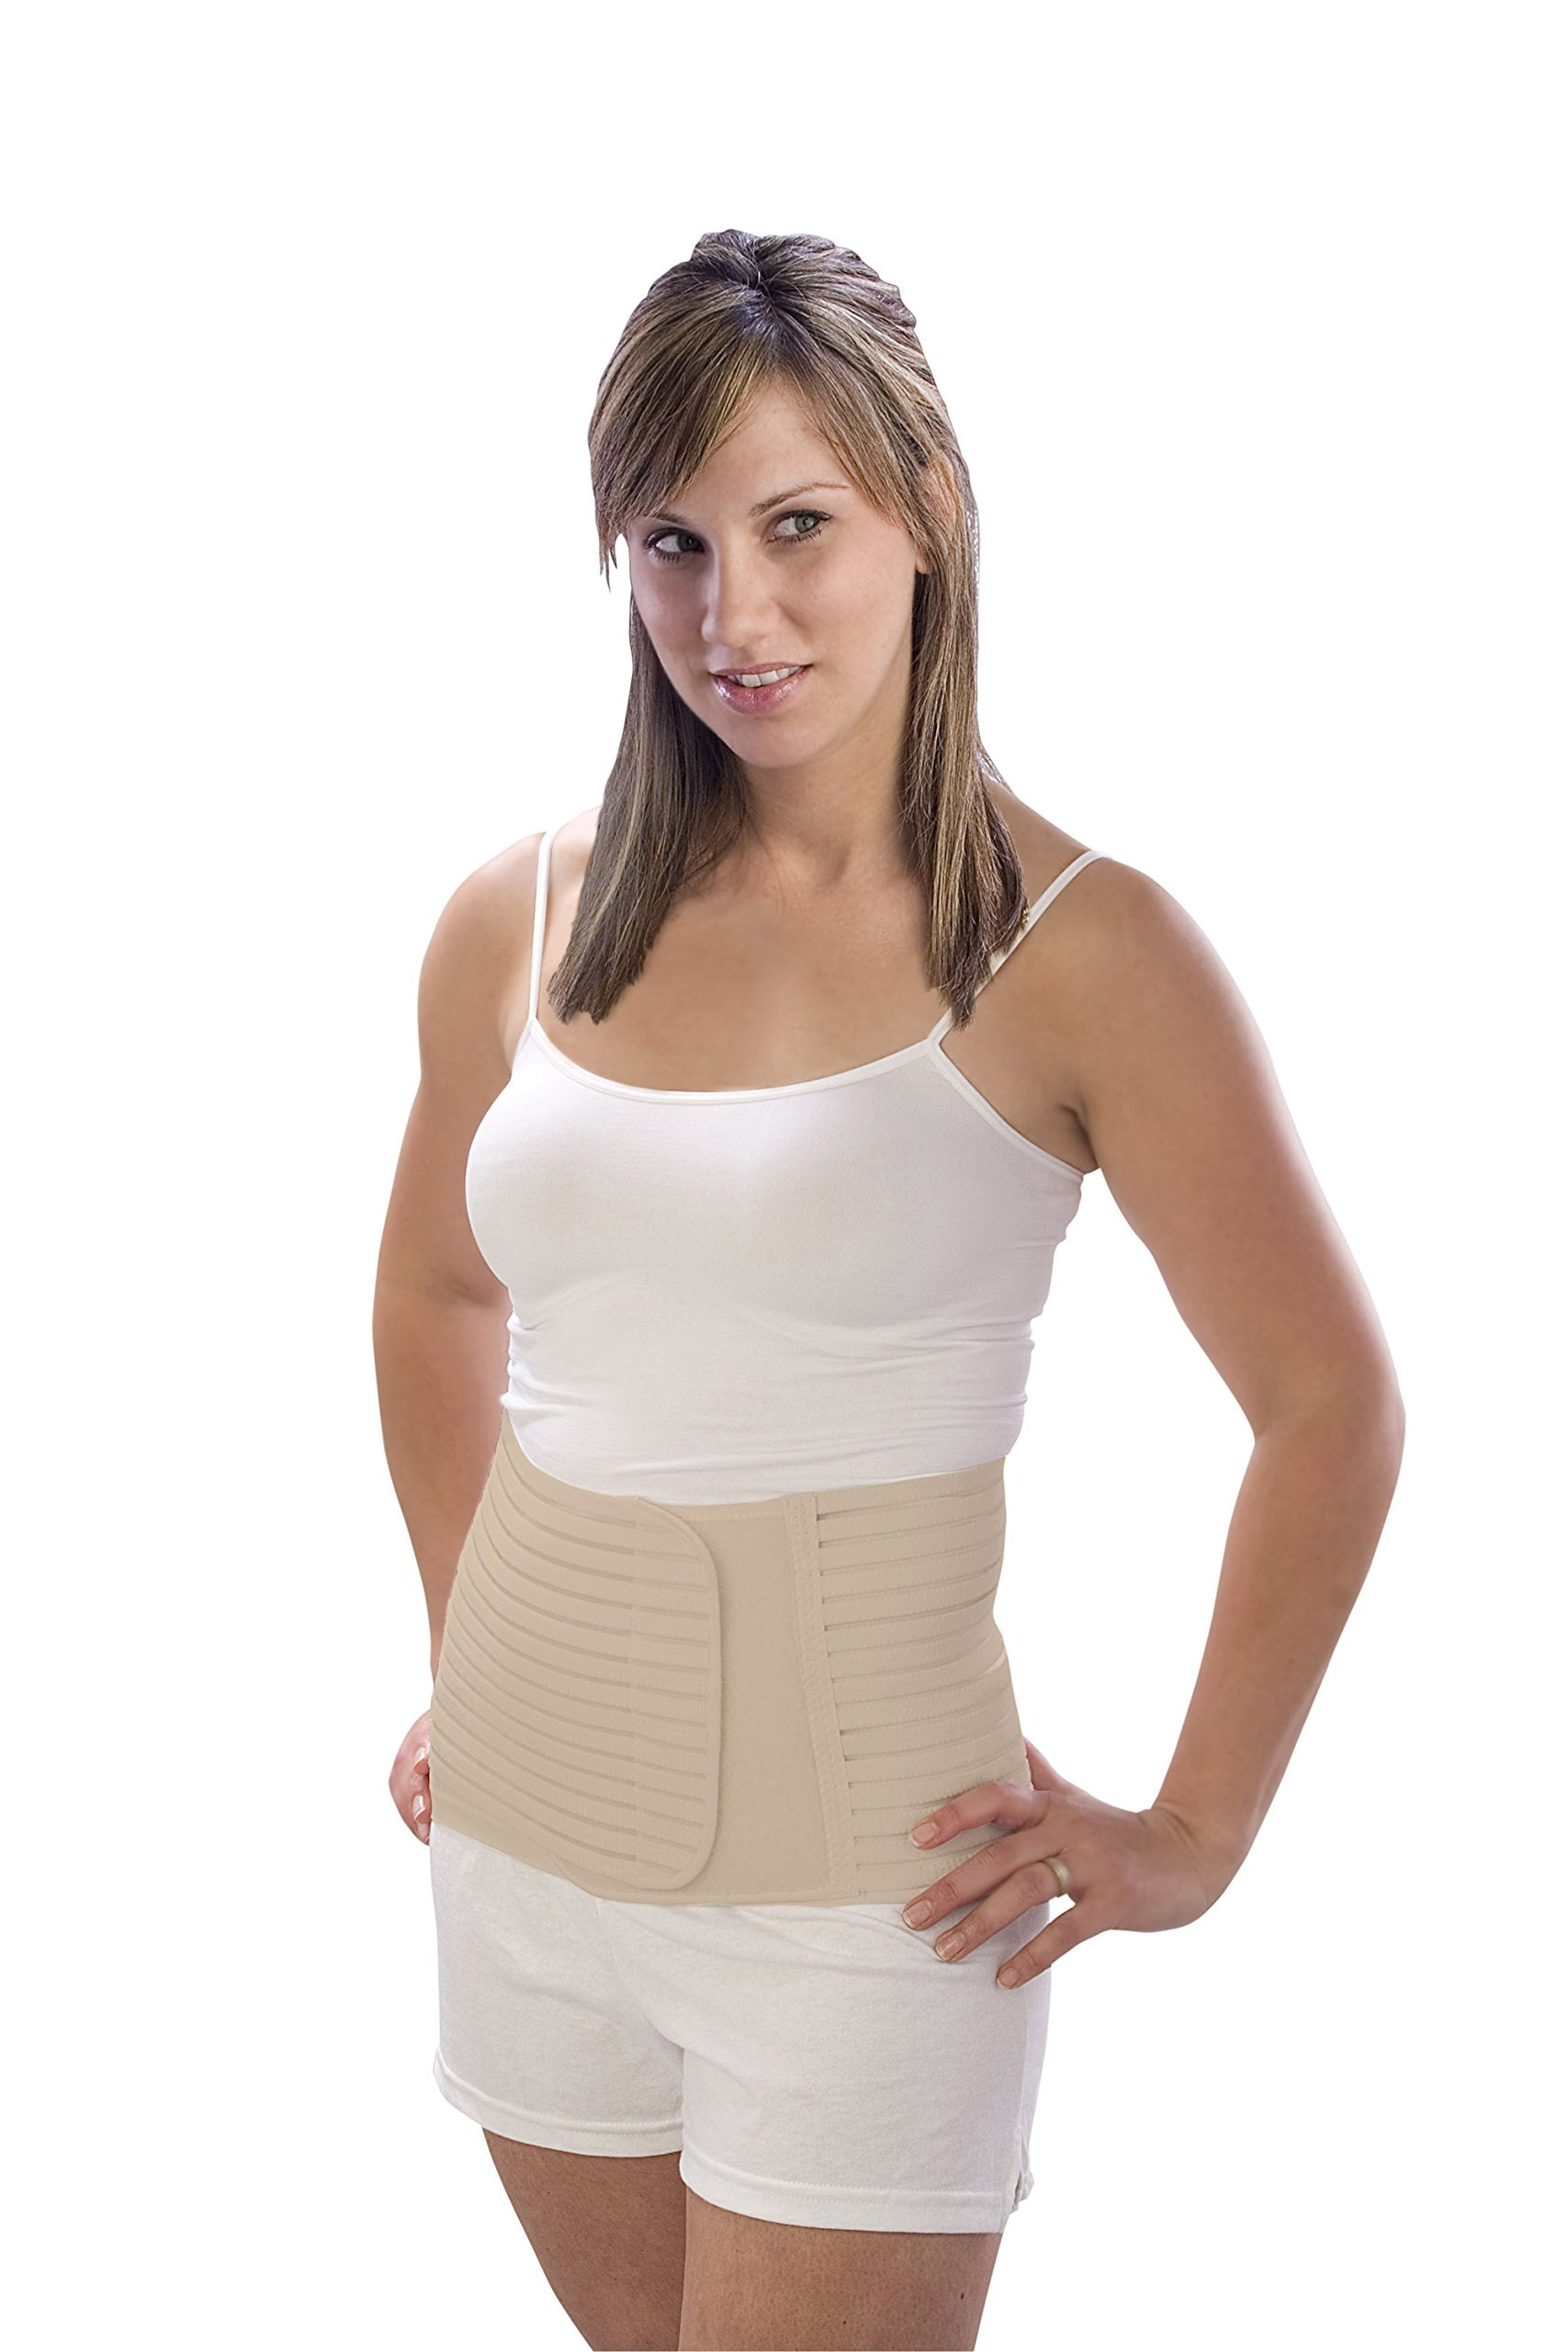 The''Original'' Postpartum Support Belt - by Loving Comfort - Adjustable Abdominal Support for Postnatal and C-Section Recovery - Beige - Medium